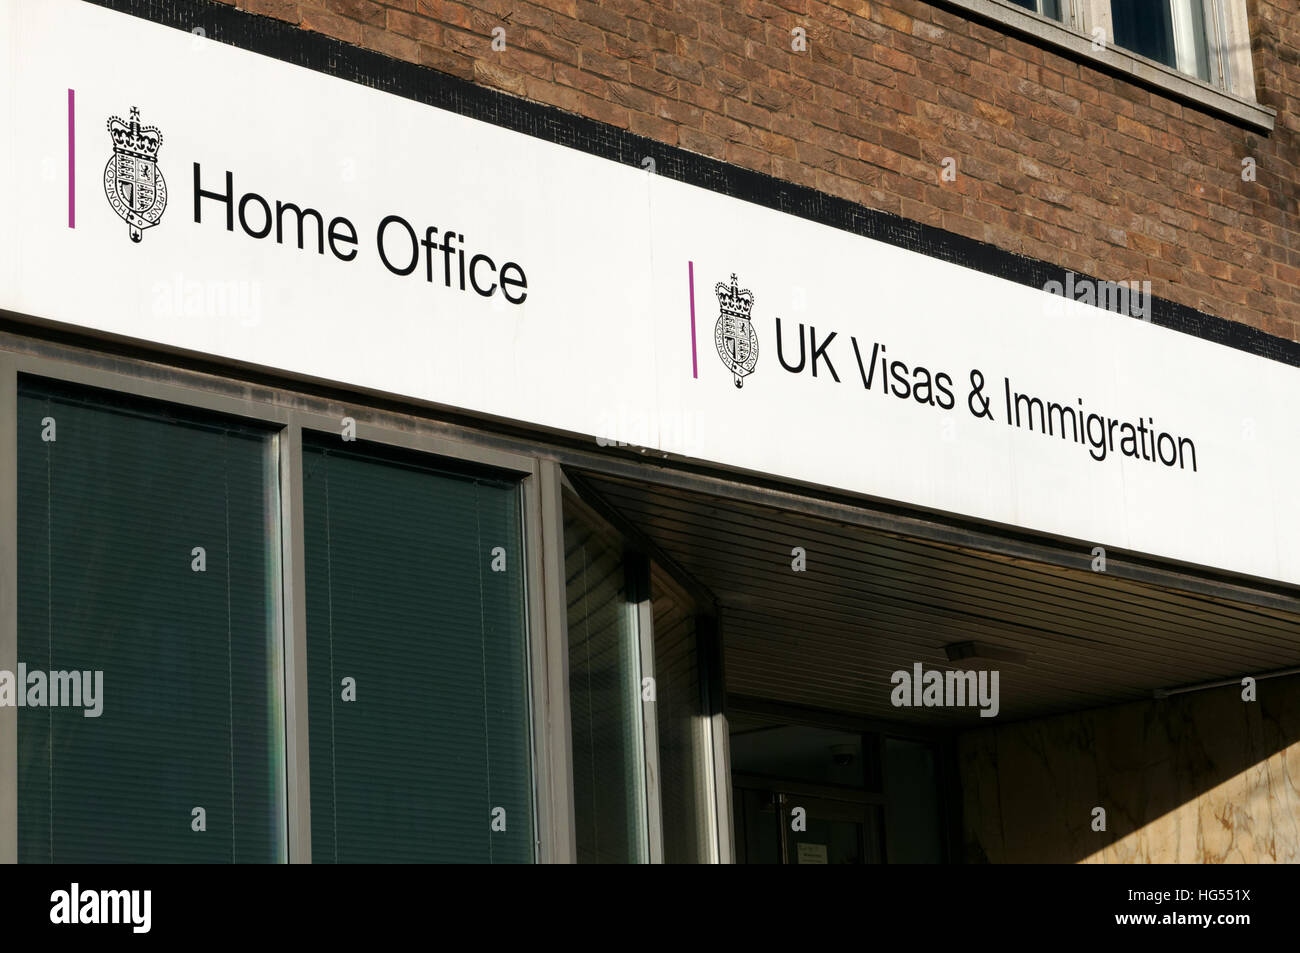 Home office visa and immigration office newport road - Uk visas and immigration home office ...